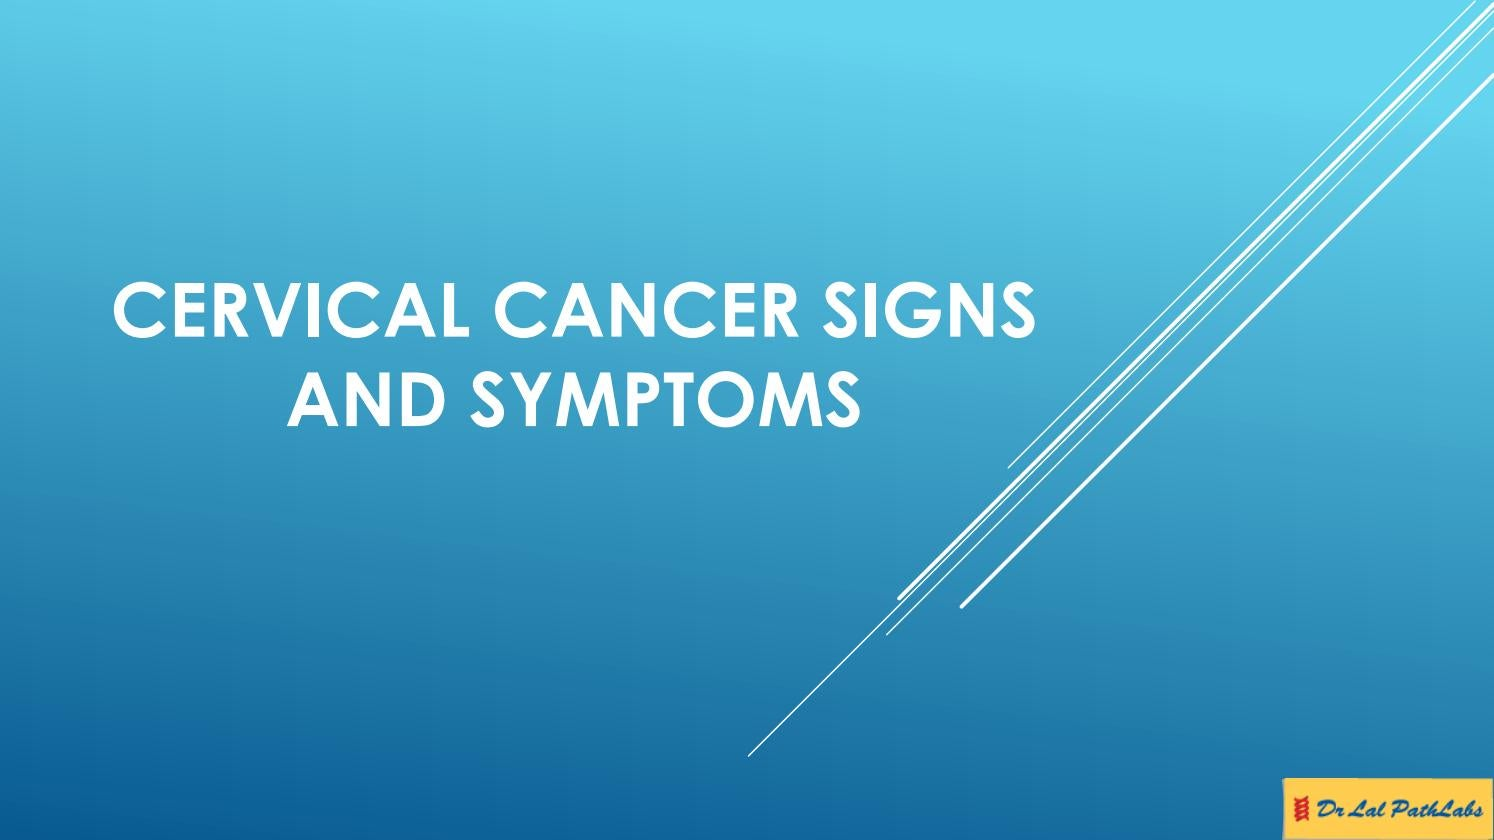 Cervical Cancer Signs and Symptoms by Lal PathLabs - issuu